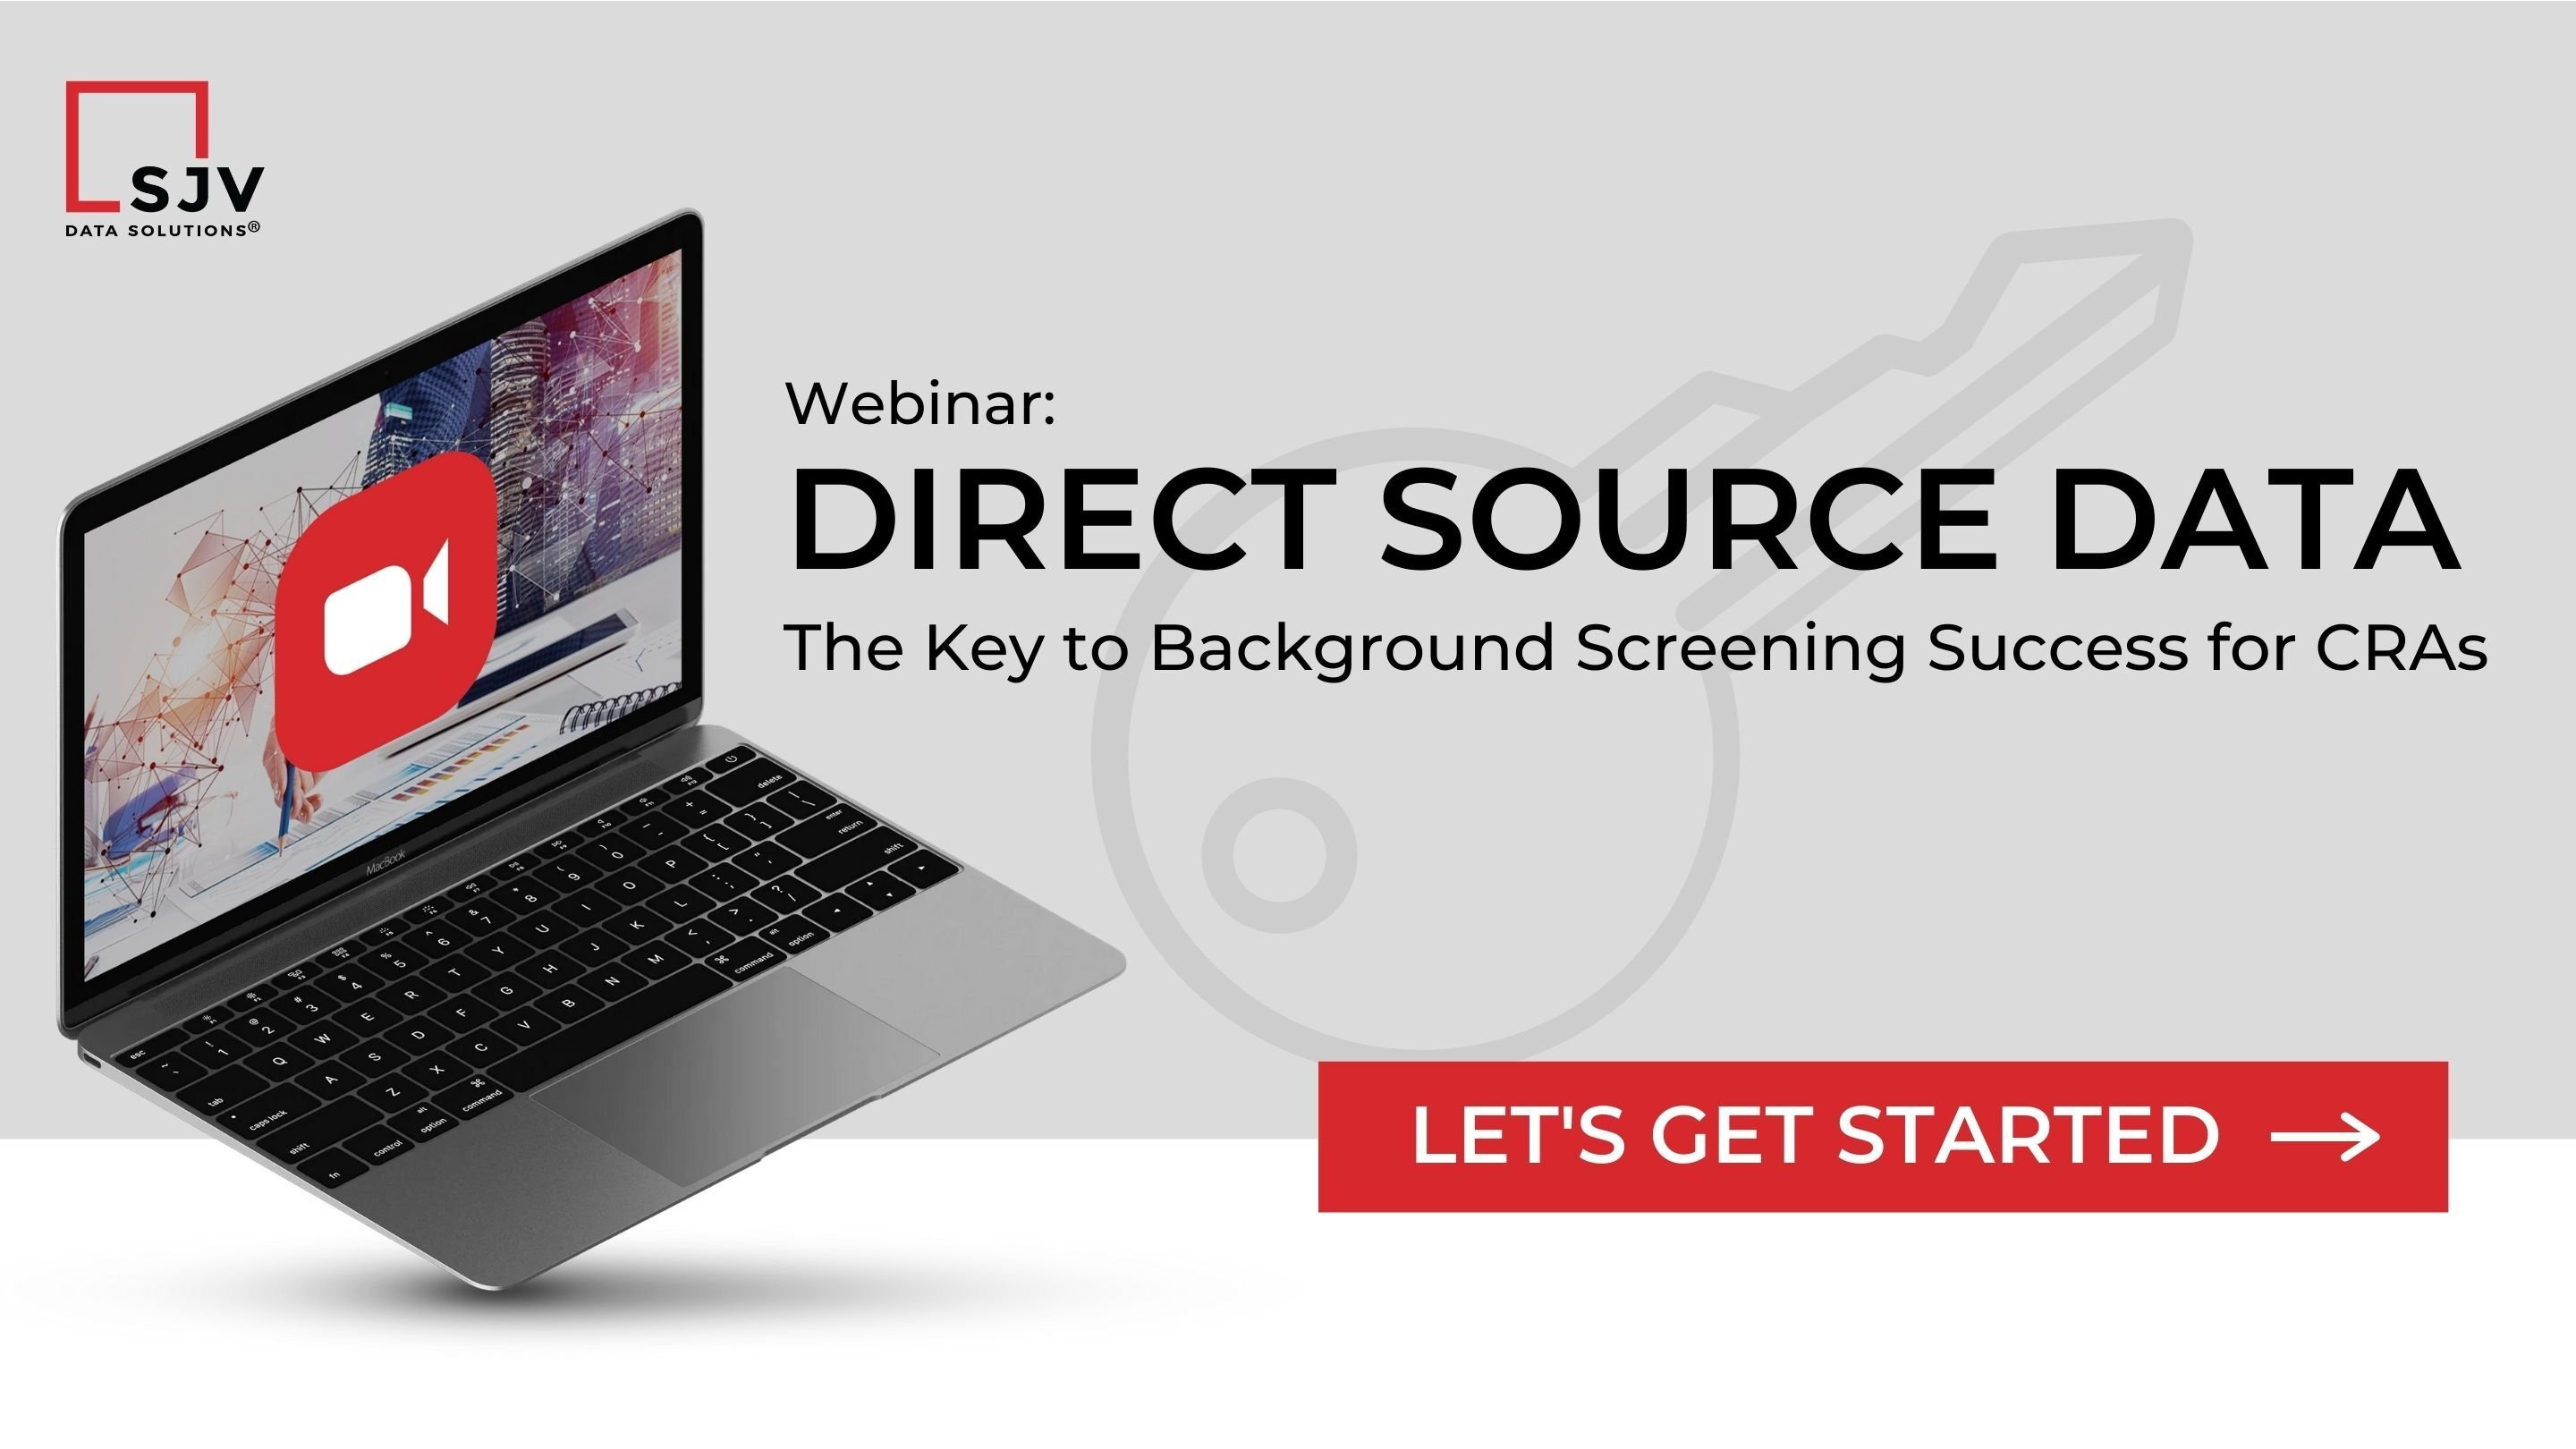 Direct Source Data: The Key to Background Screening Success for CRAs